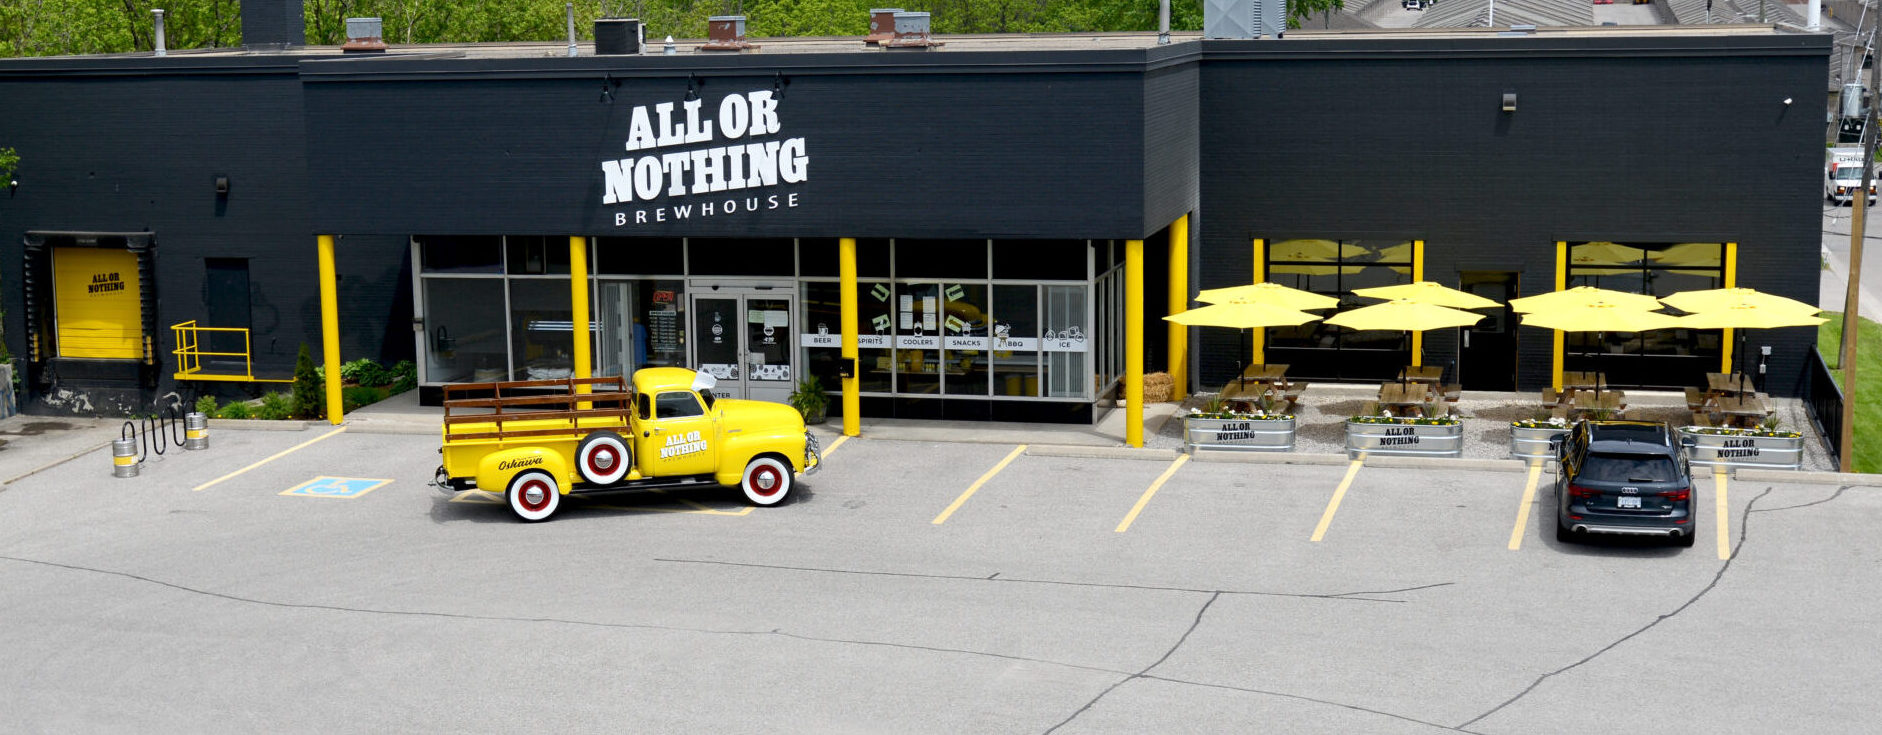 All or Nothing Brewhouse Front